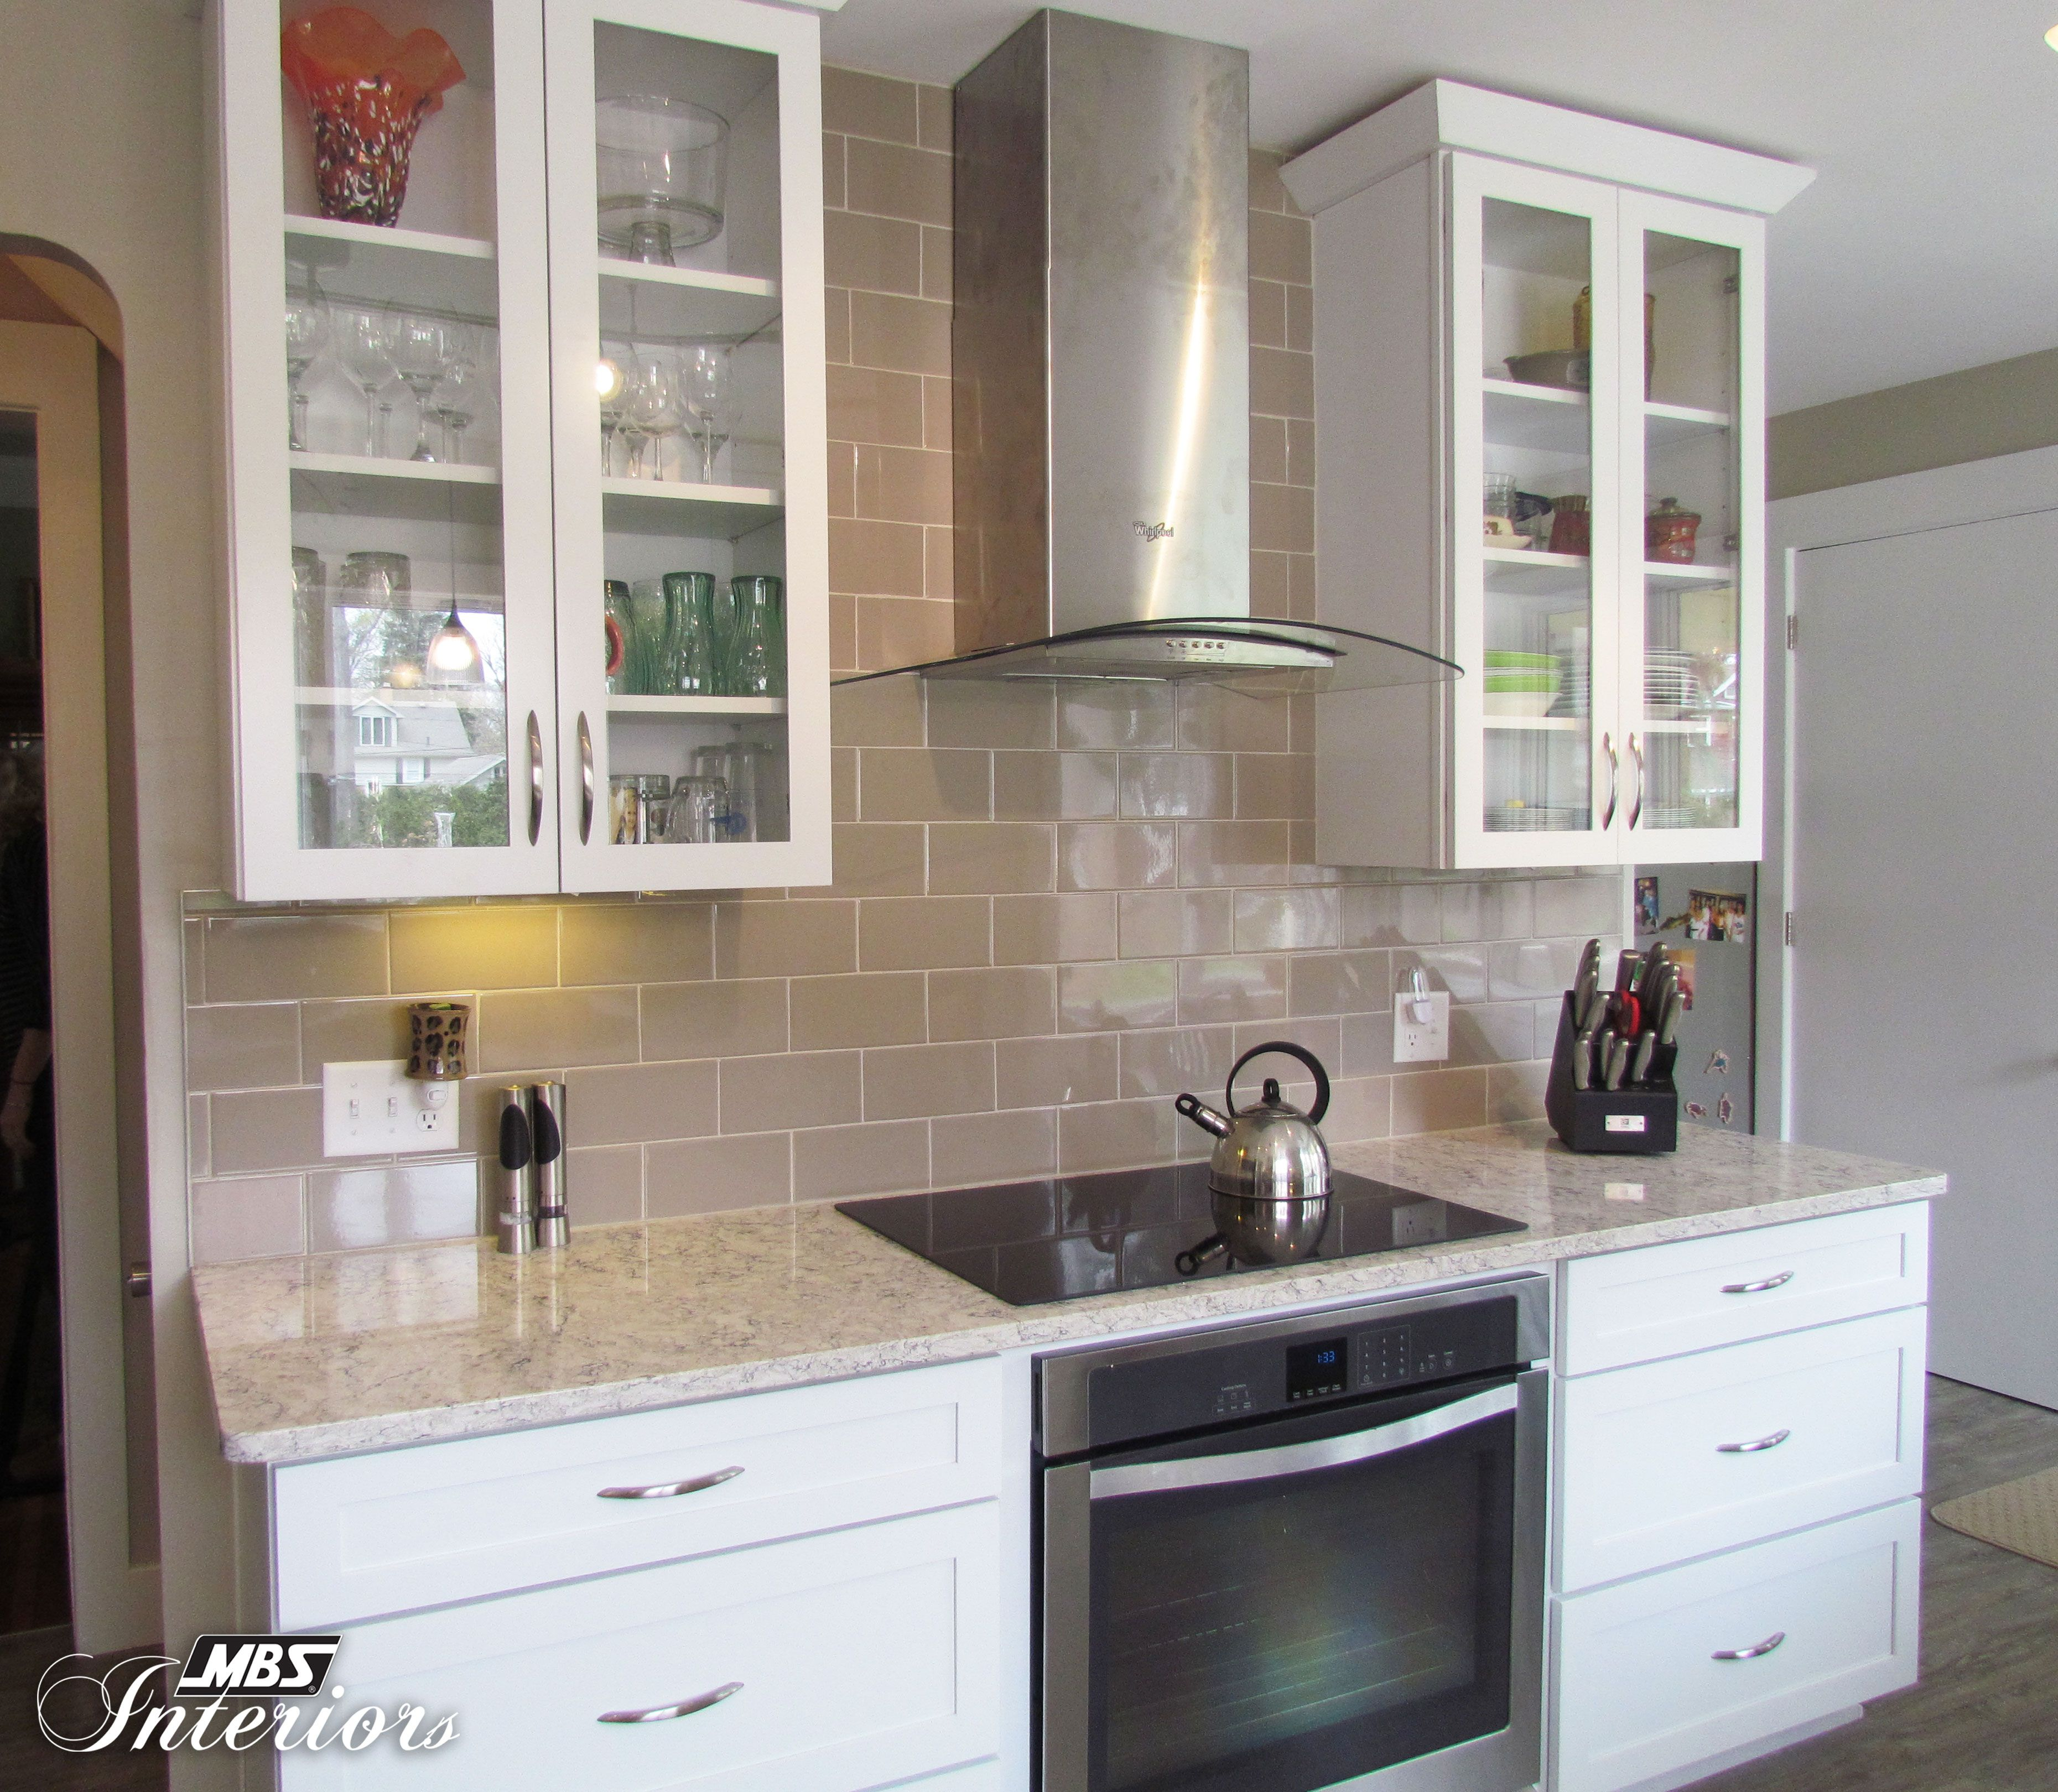 Kraftmaid Kitchen Remodel Toledo Ohio Kraftmaid Kitchens Kitchen Tiles Kitchen Splashback